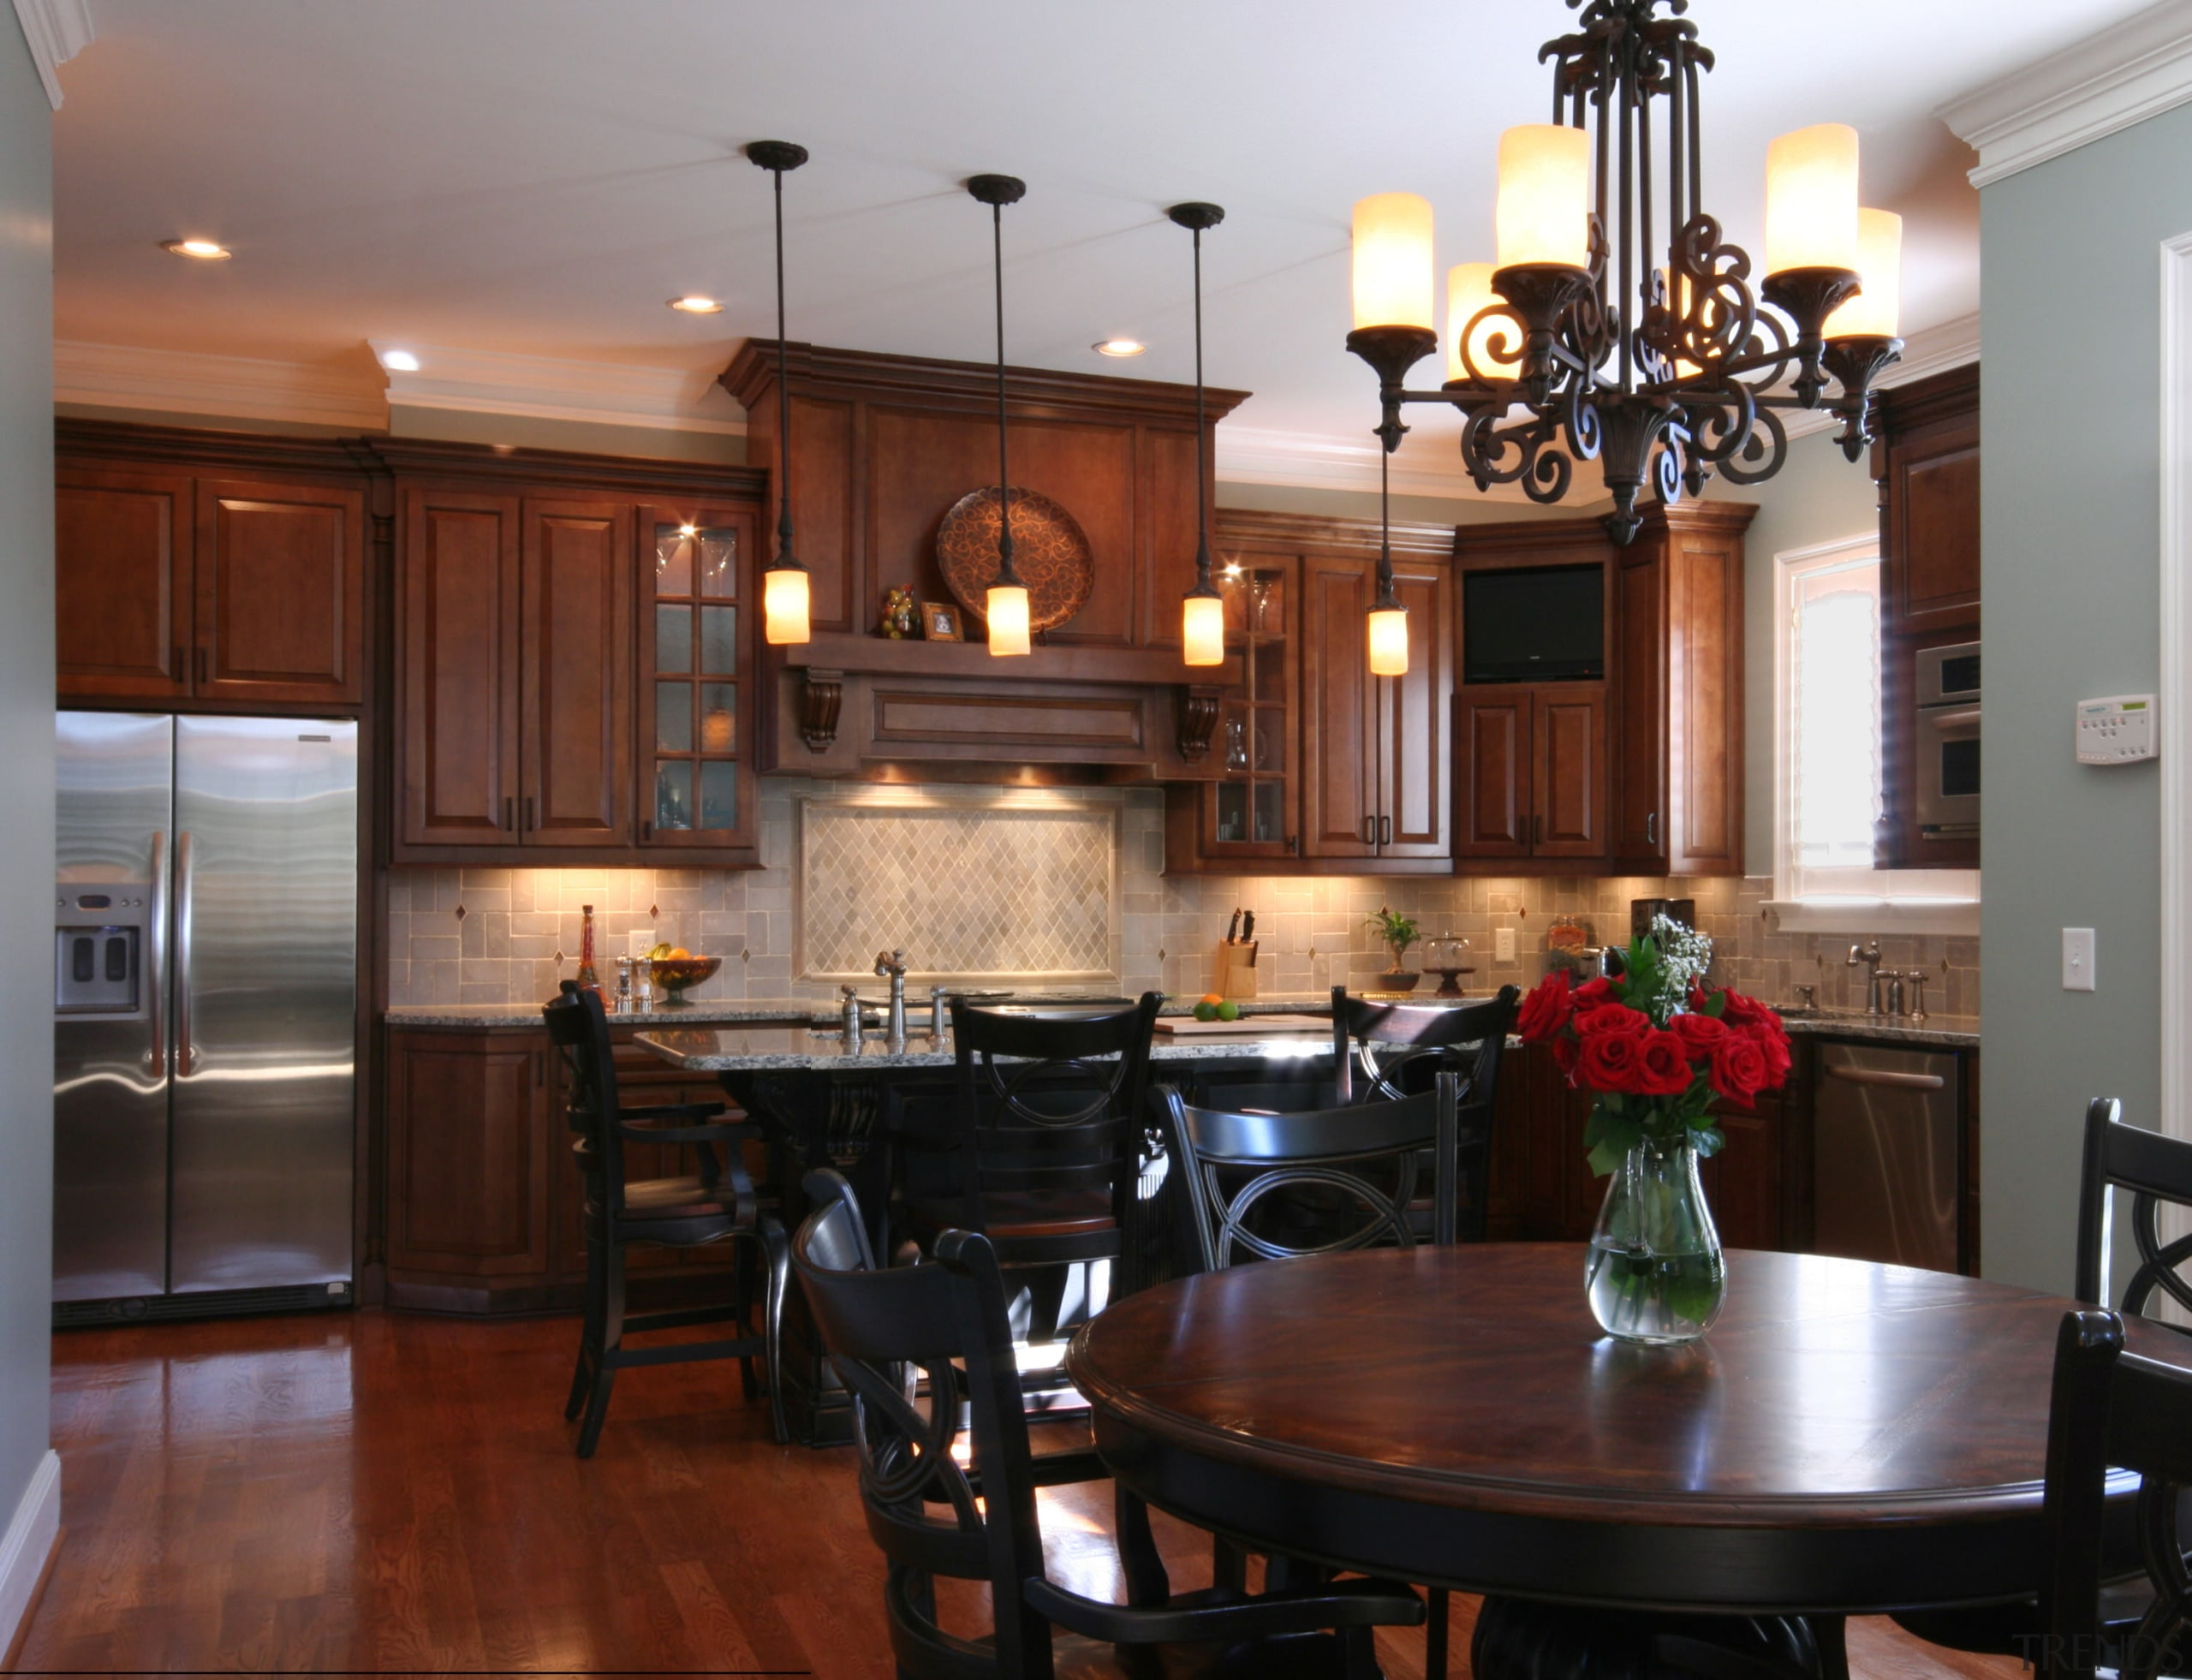 Dark timber kitchen - stainless fridge - traditional cabinetry, countertop, cuisine classique, dining room, flooring, hardwood, interior design, kitchen, room, wood flooring, gray, red